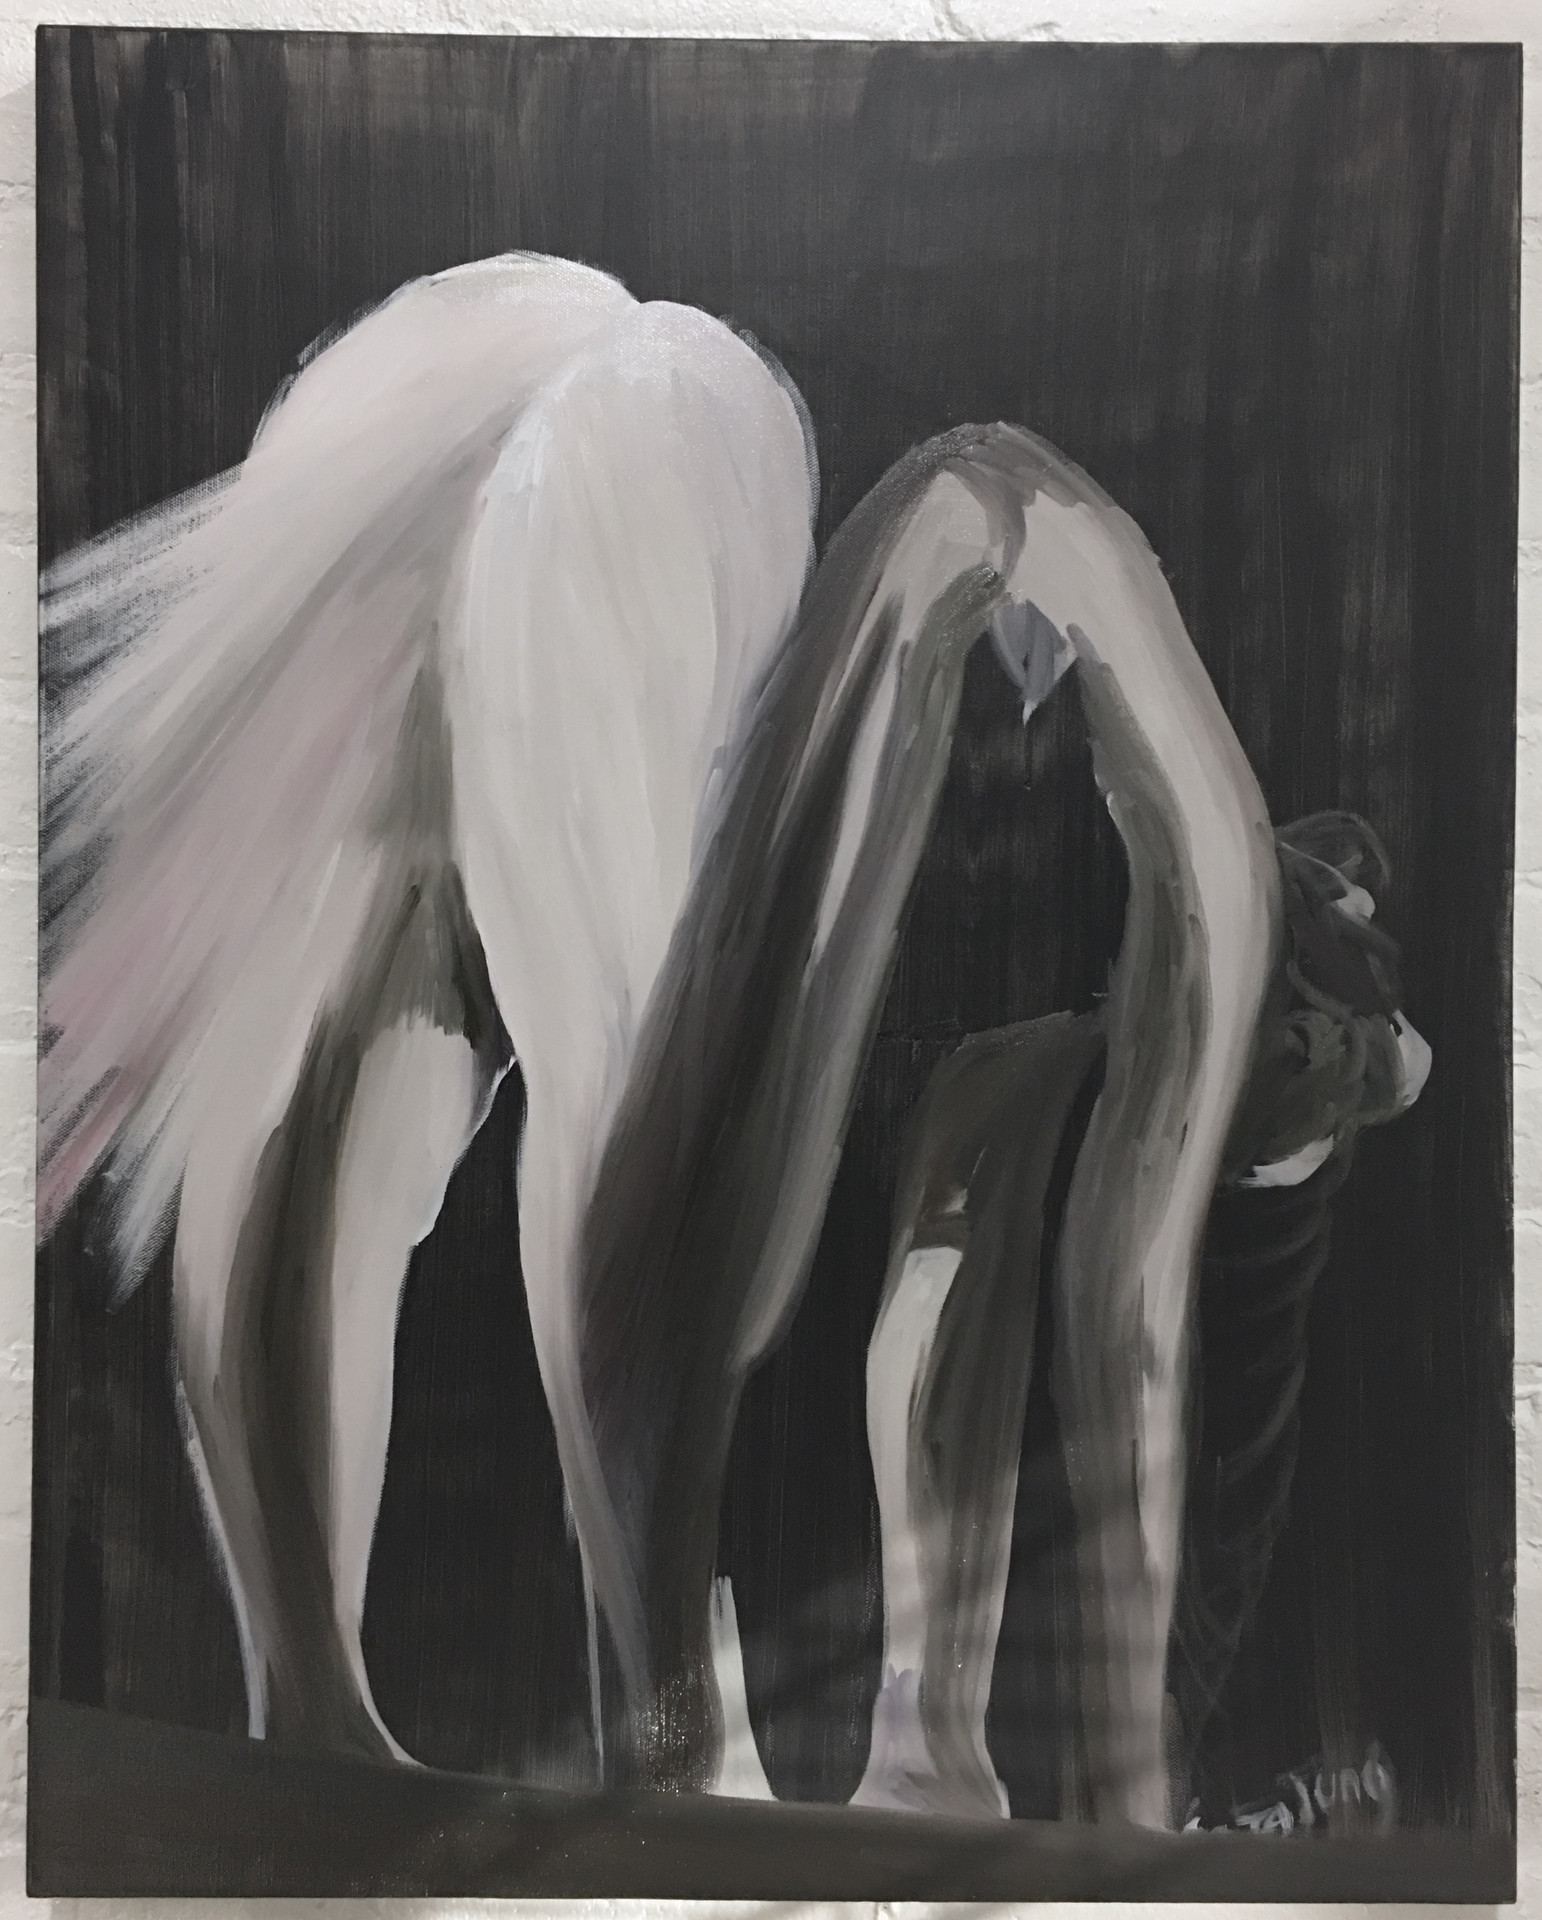 Farting on All Fours, 24x30inches, oil on canvas, 2018